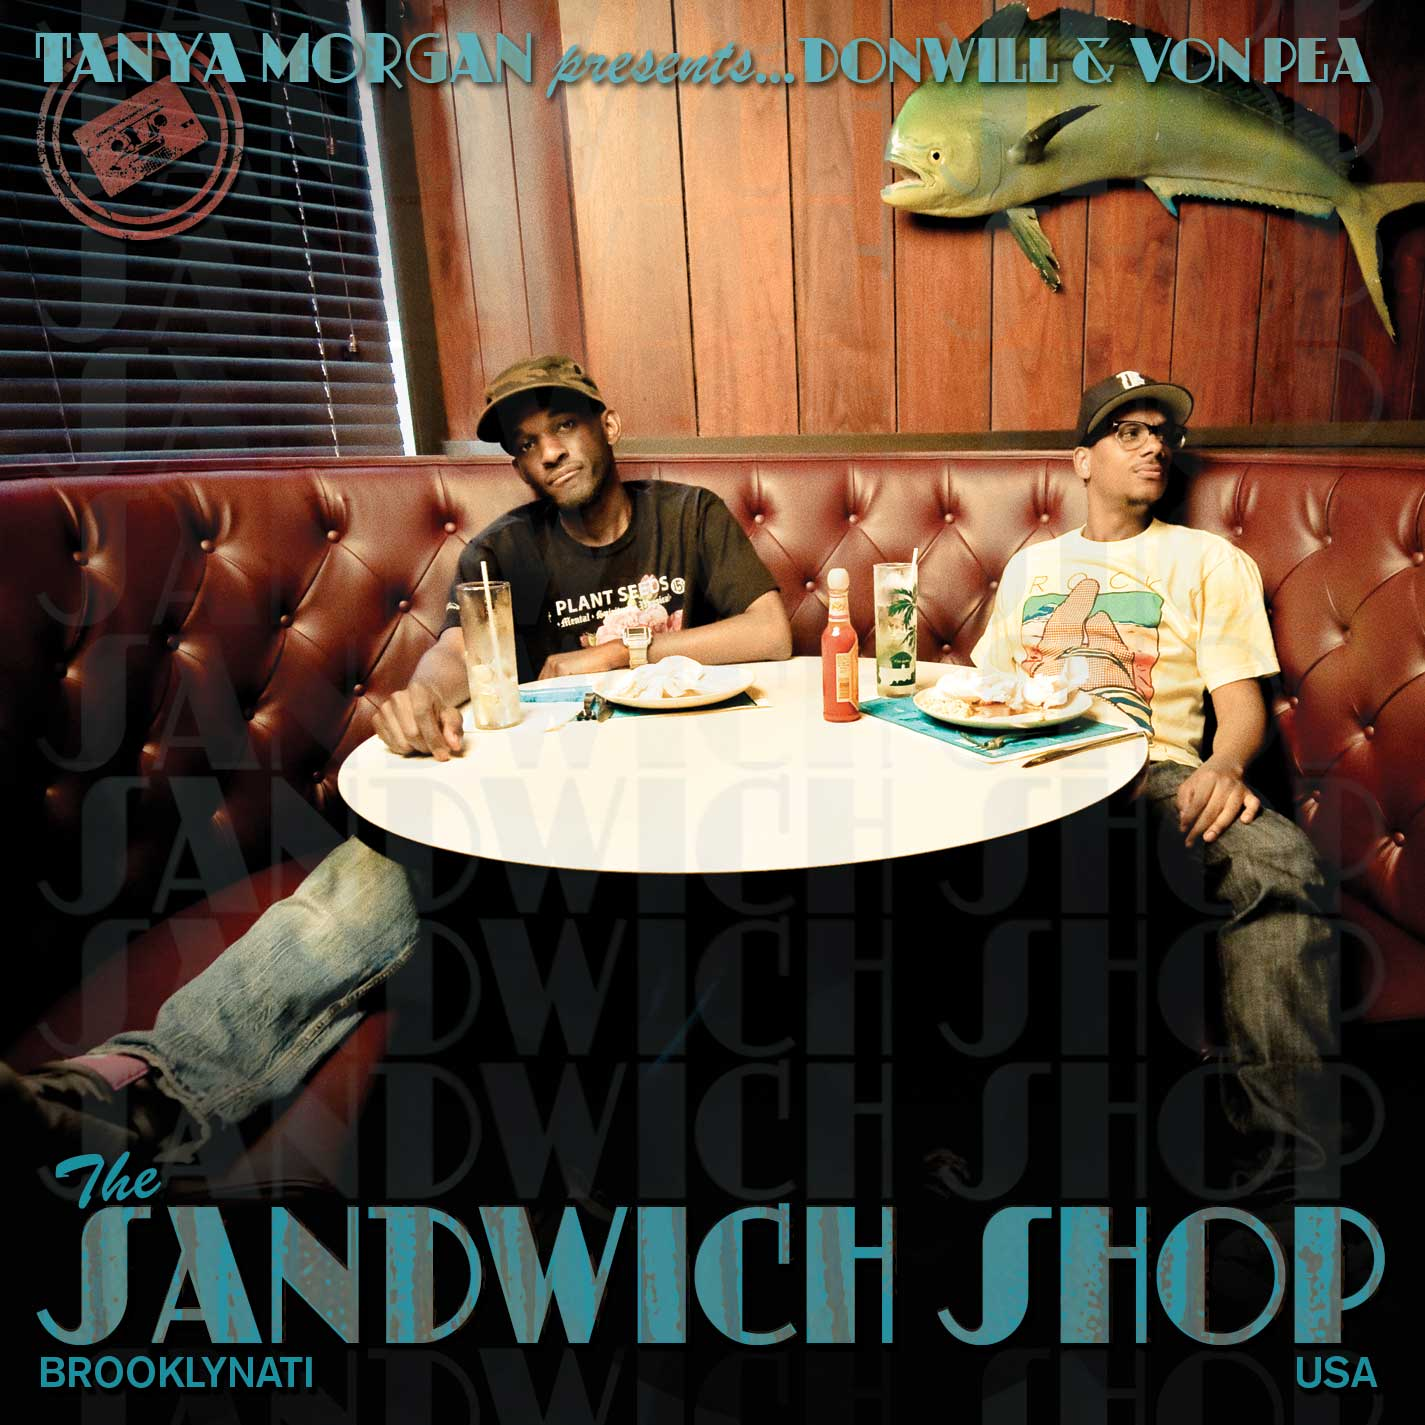 Donwill & Von Pea Releases The Sandwich Shop